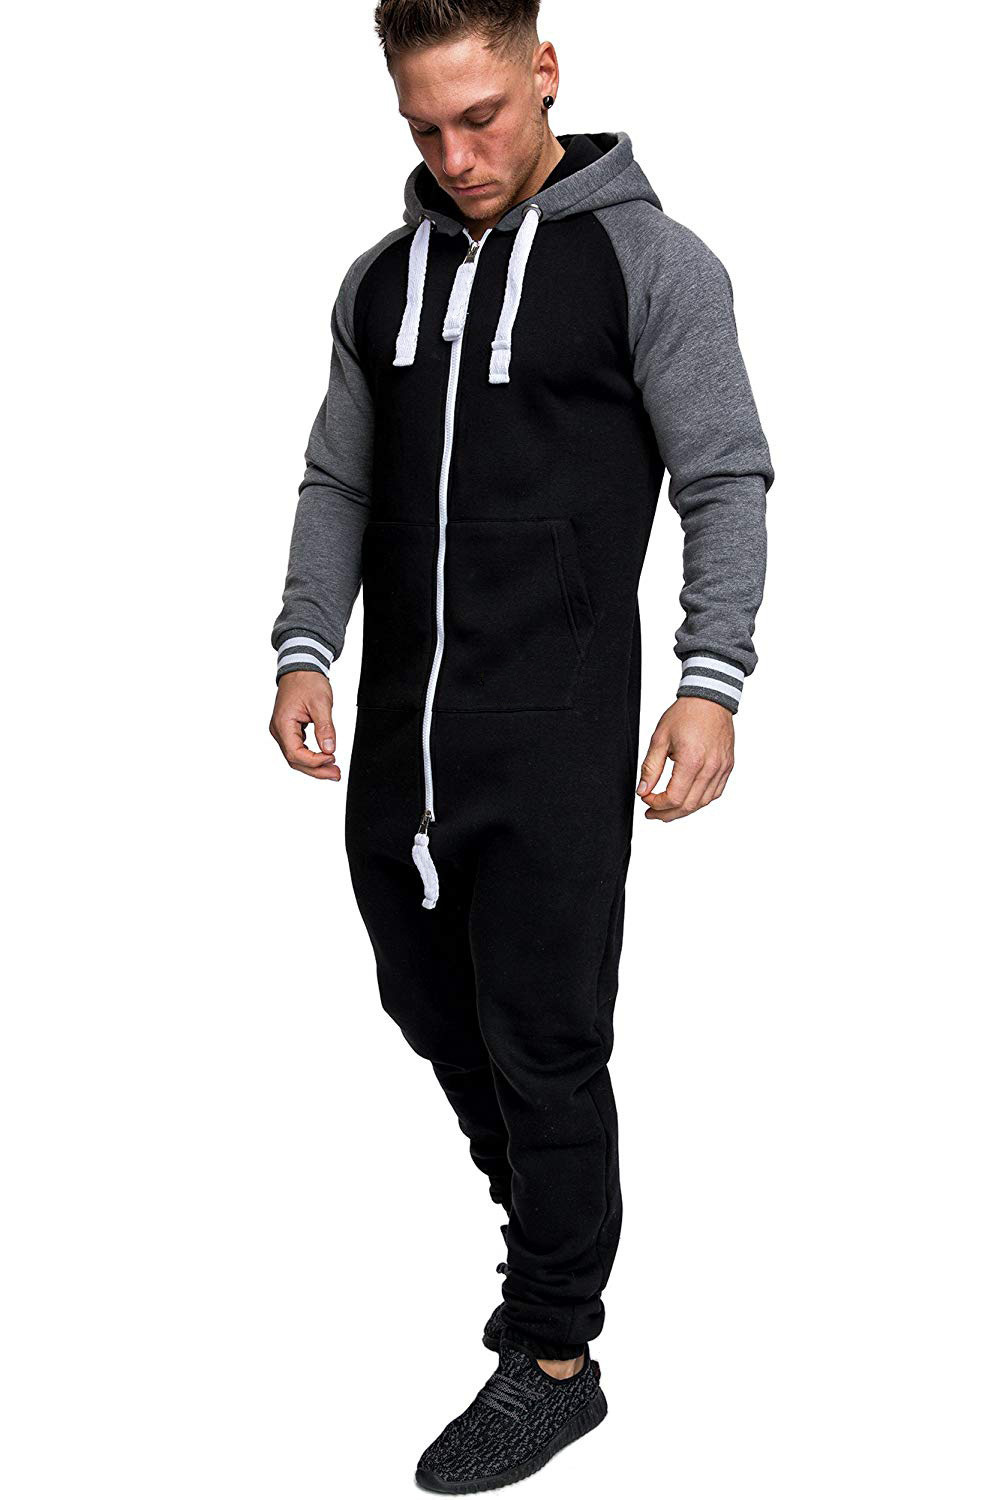 Casual Autumn Hooded Tracksuit Jumpsuit Long Pants Romper For Male Mens Fleece warm Overalls Sweatshirts Male Streetwear X9126 20